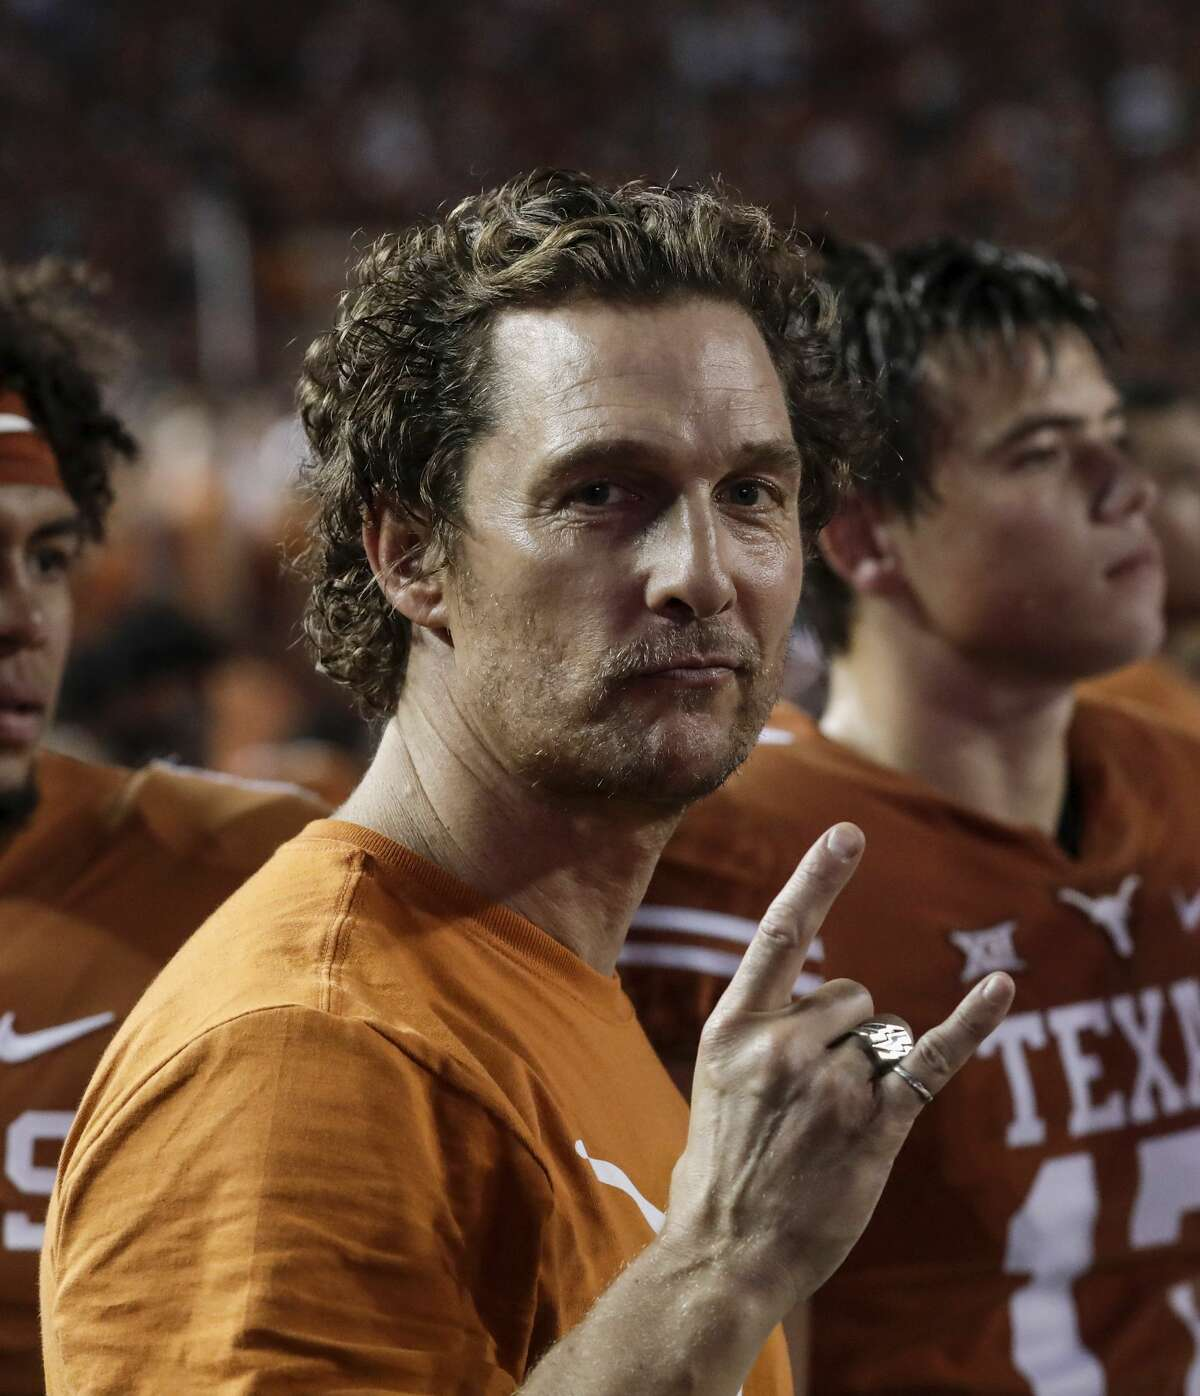 AUSTIN, TX - SEPTEMBER 15: Actor and Texas fan Matthew McConaughey stands on the sideline during the game between the Texas Longhorns and the USC Trojans at Darrell K Royal-Texas Memorial Stadium on September 15, 2018 in Austin, Texas. (Photo by Tim Warner/Getty Images)